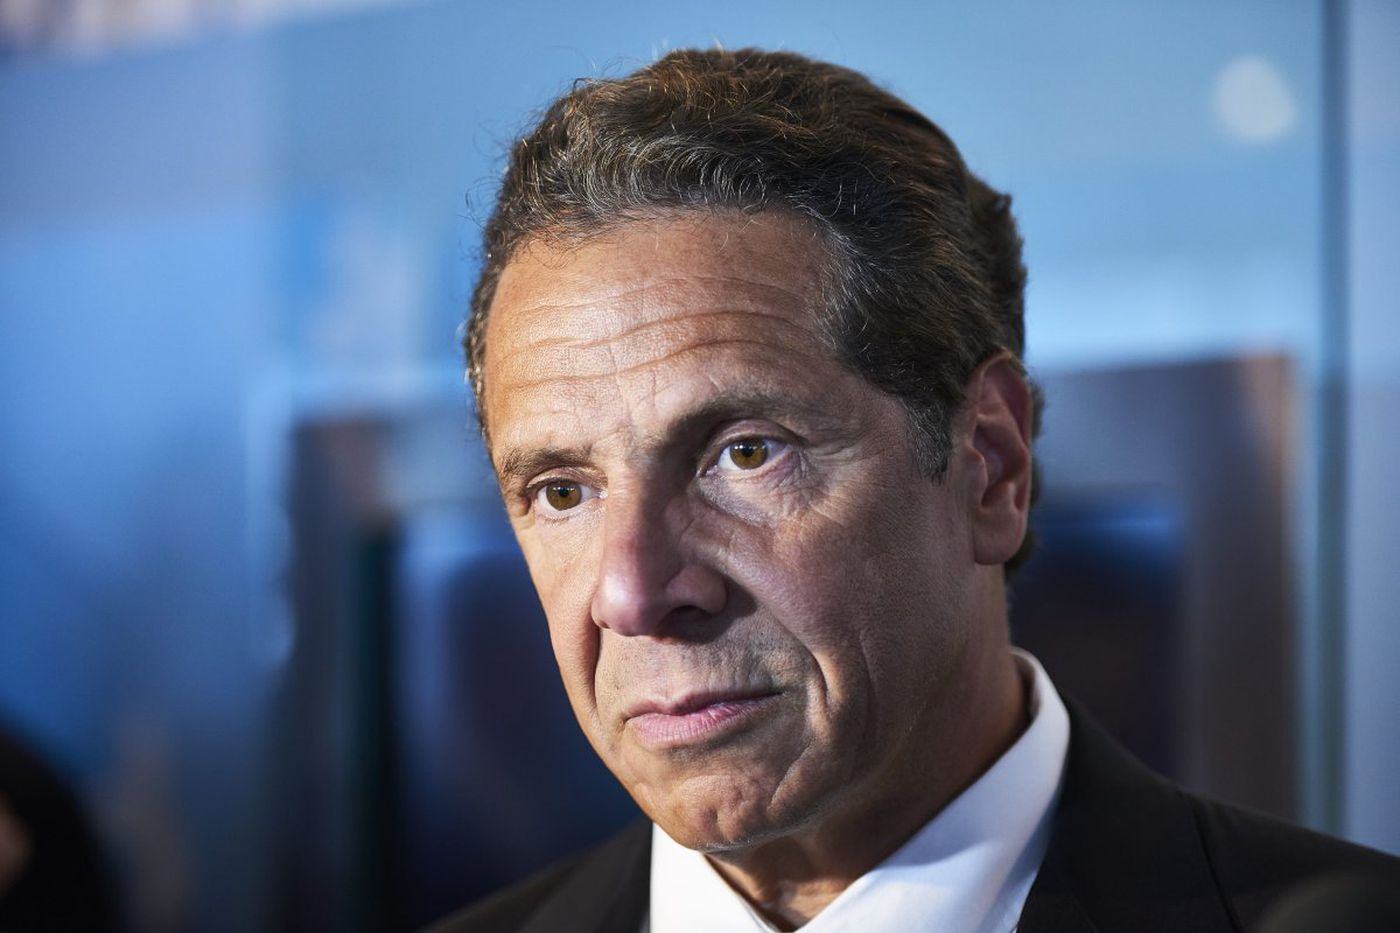 Gov. Cuomo released a statement saying Schneiderman should step down immediately.